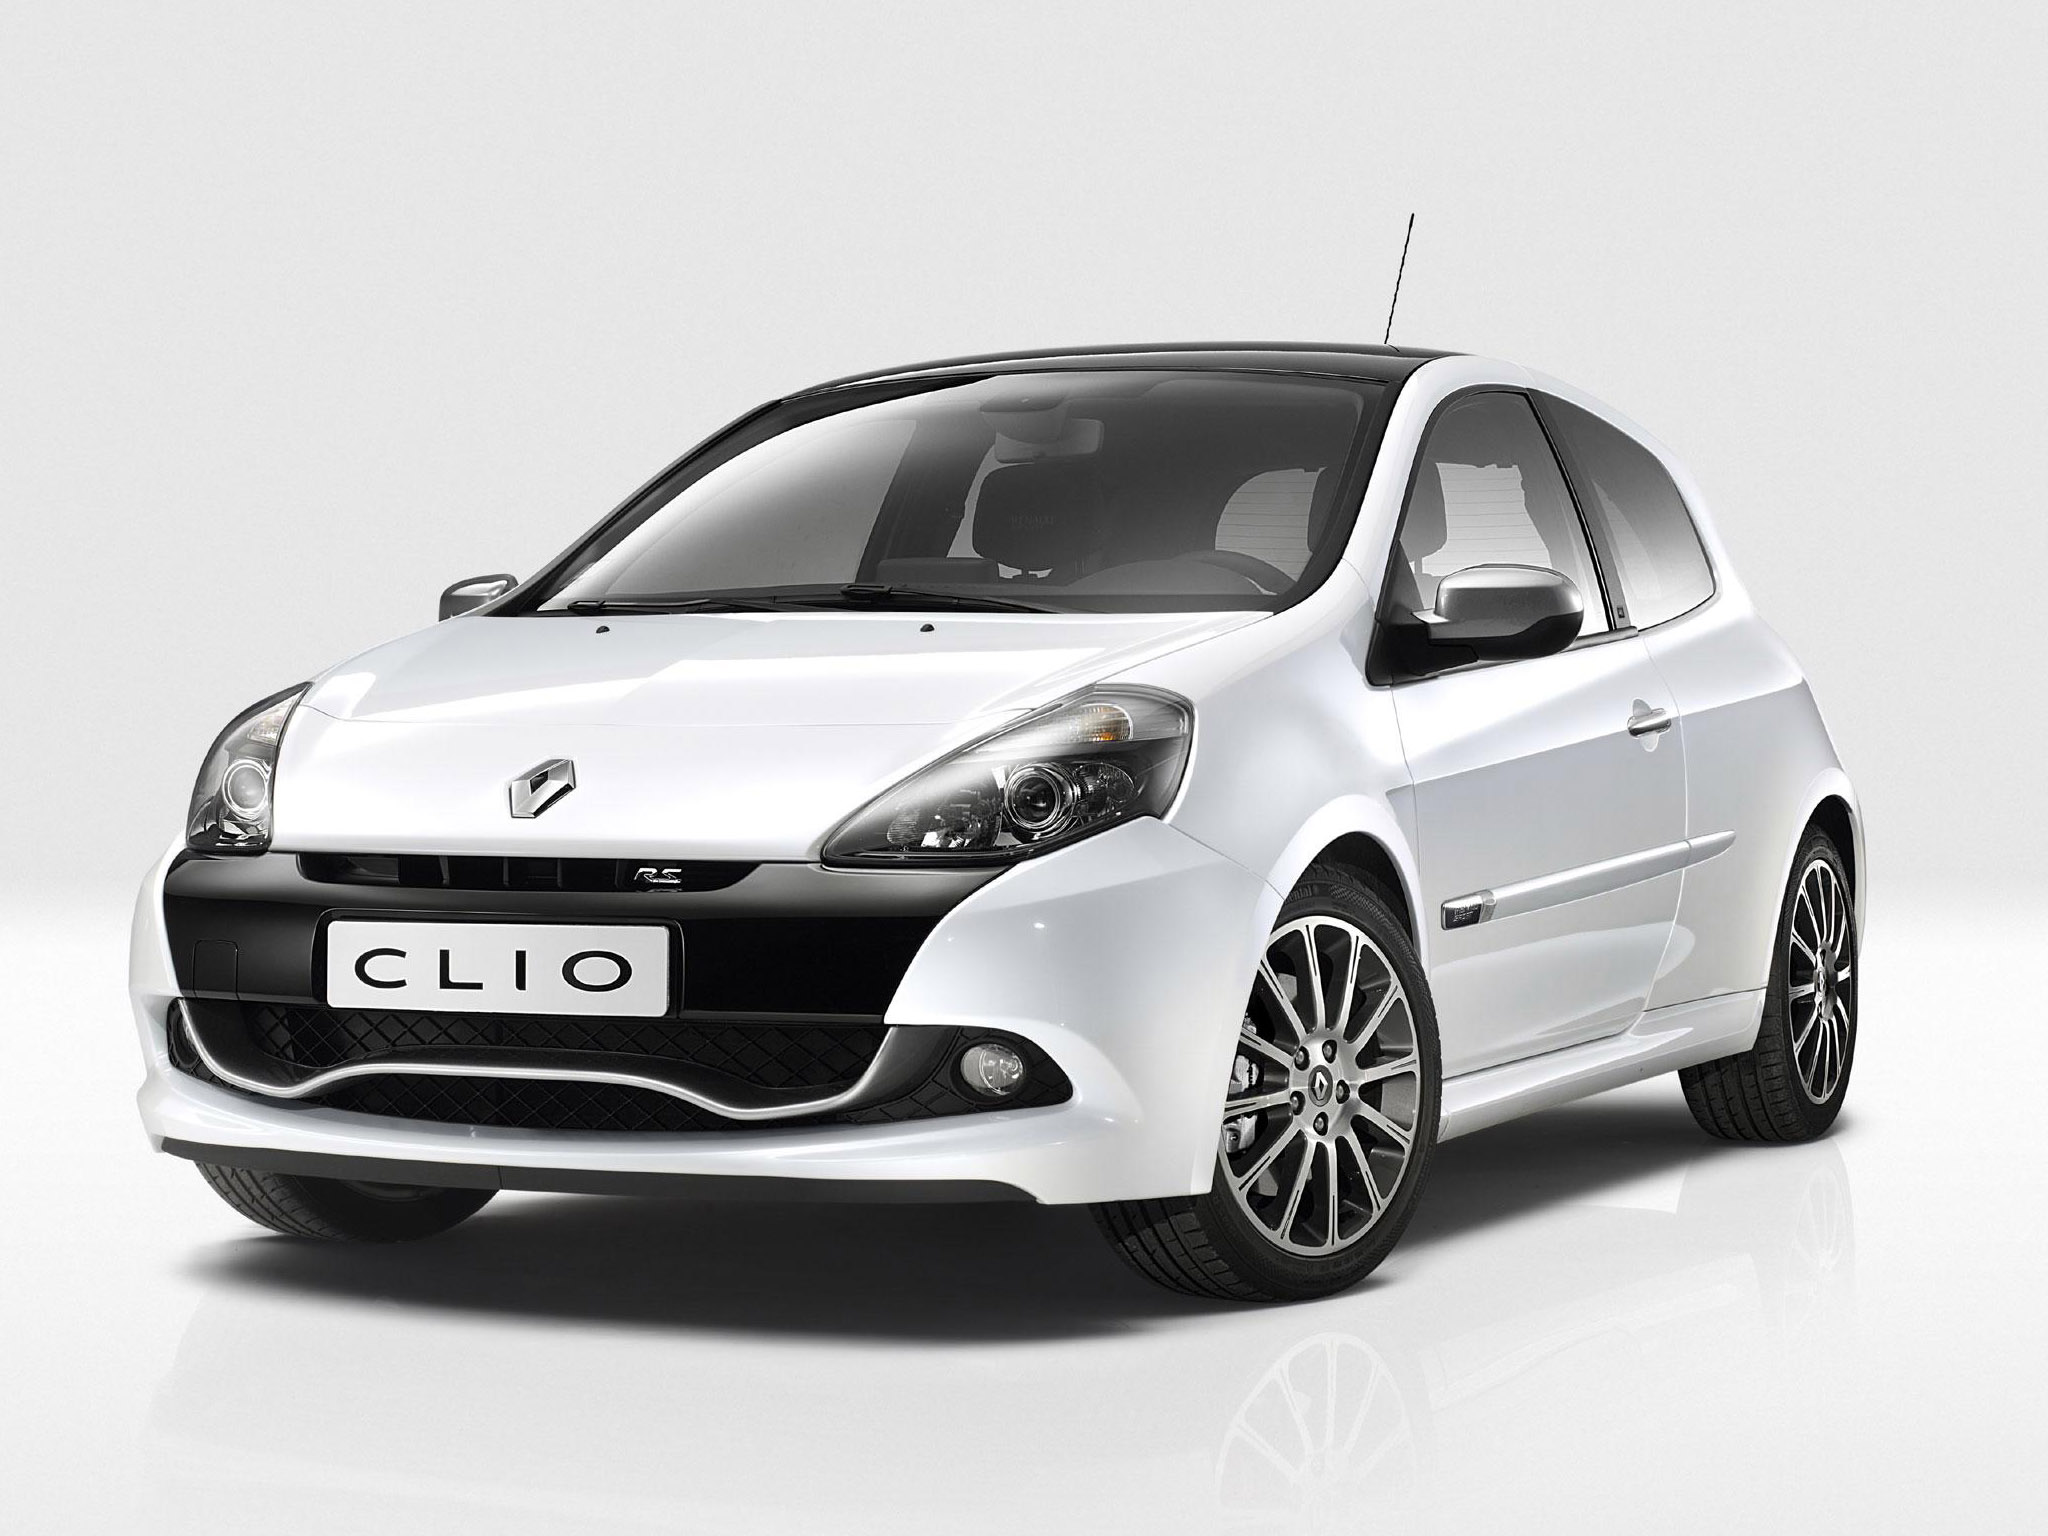 renault clio 20th limited edition 2010 renault clio 20th. Black Bedroom Furniture Sets. Home Design Ideas